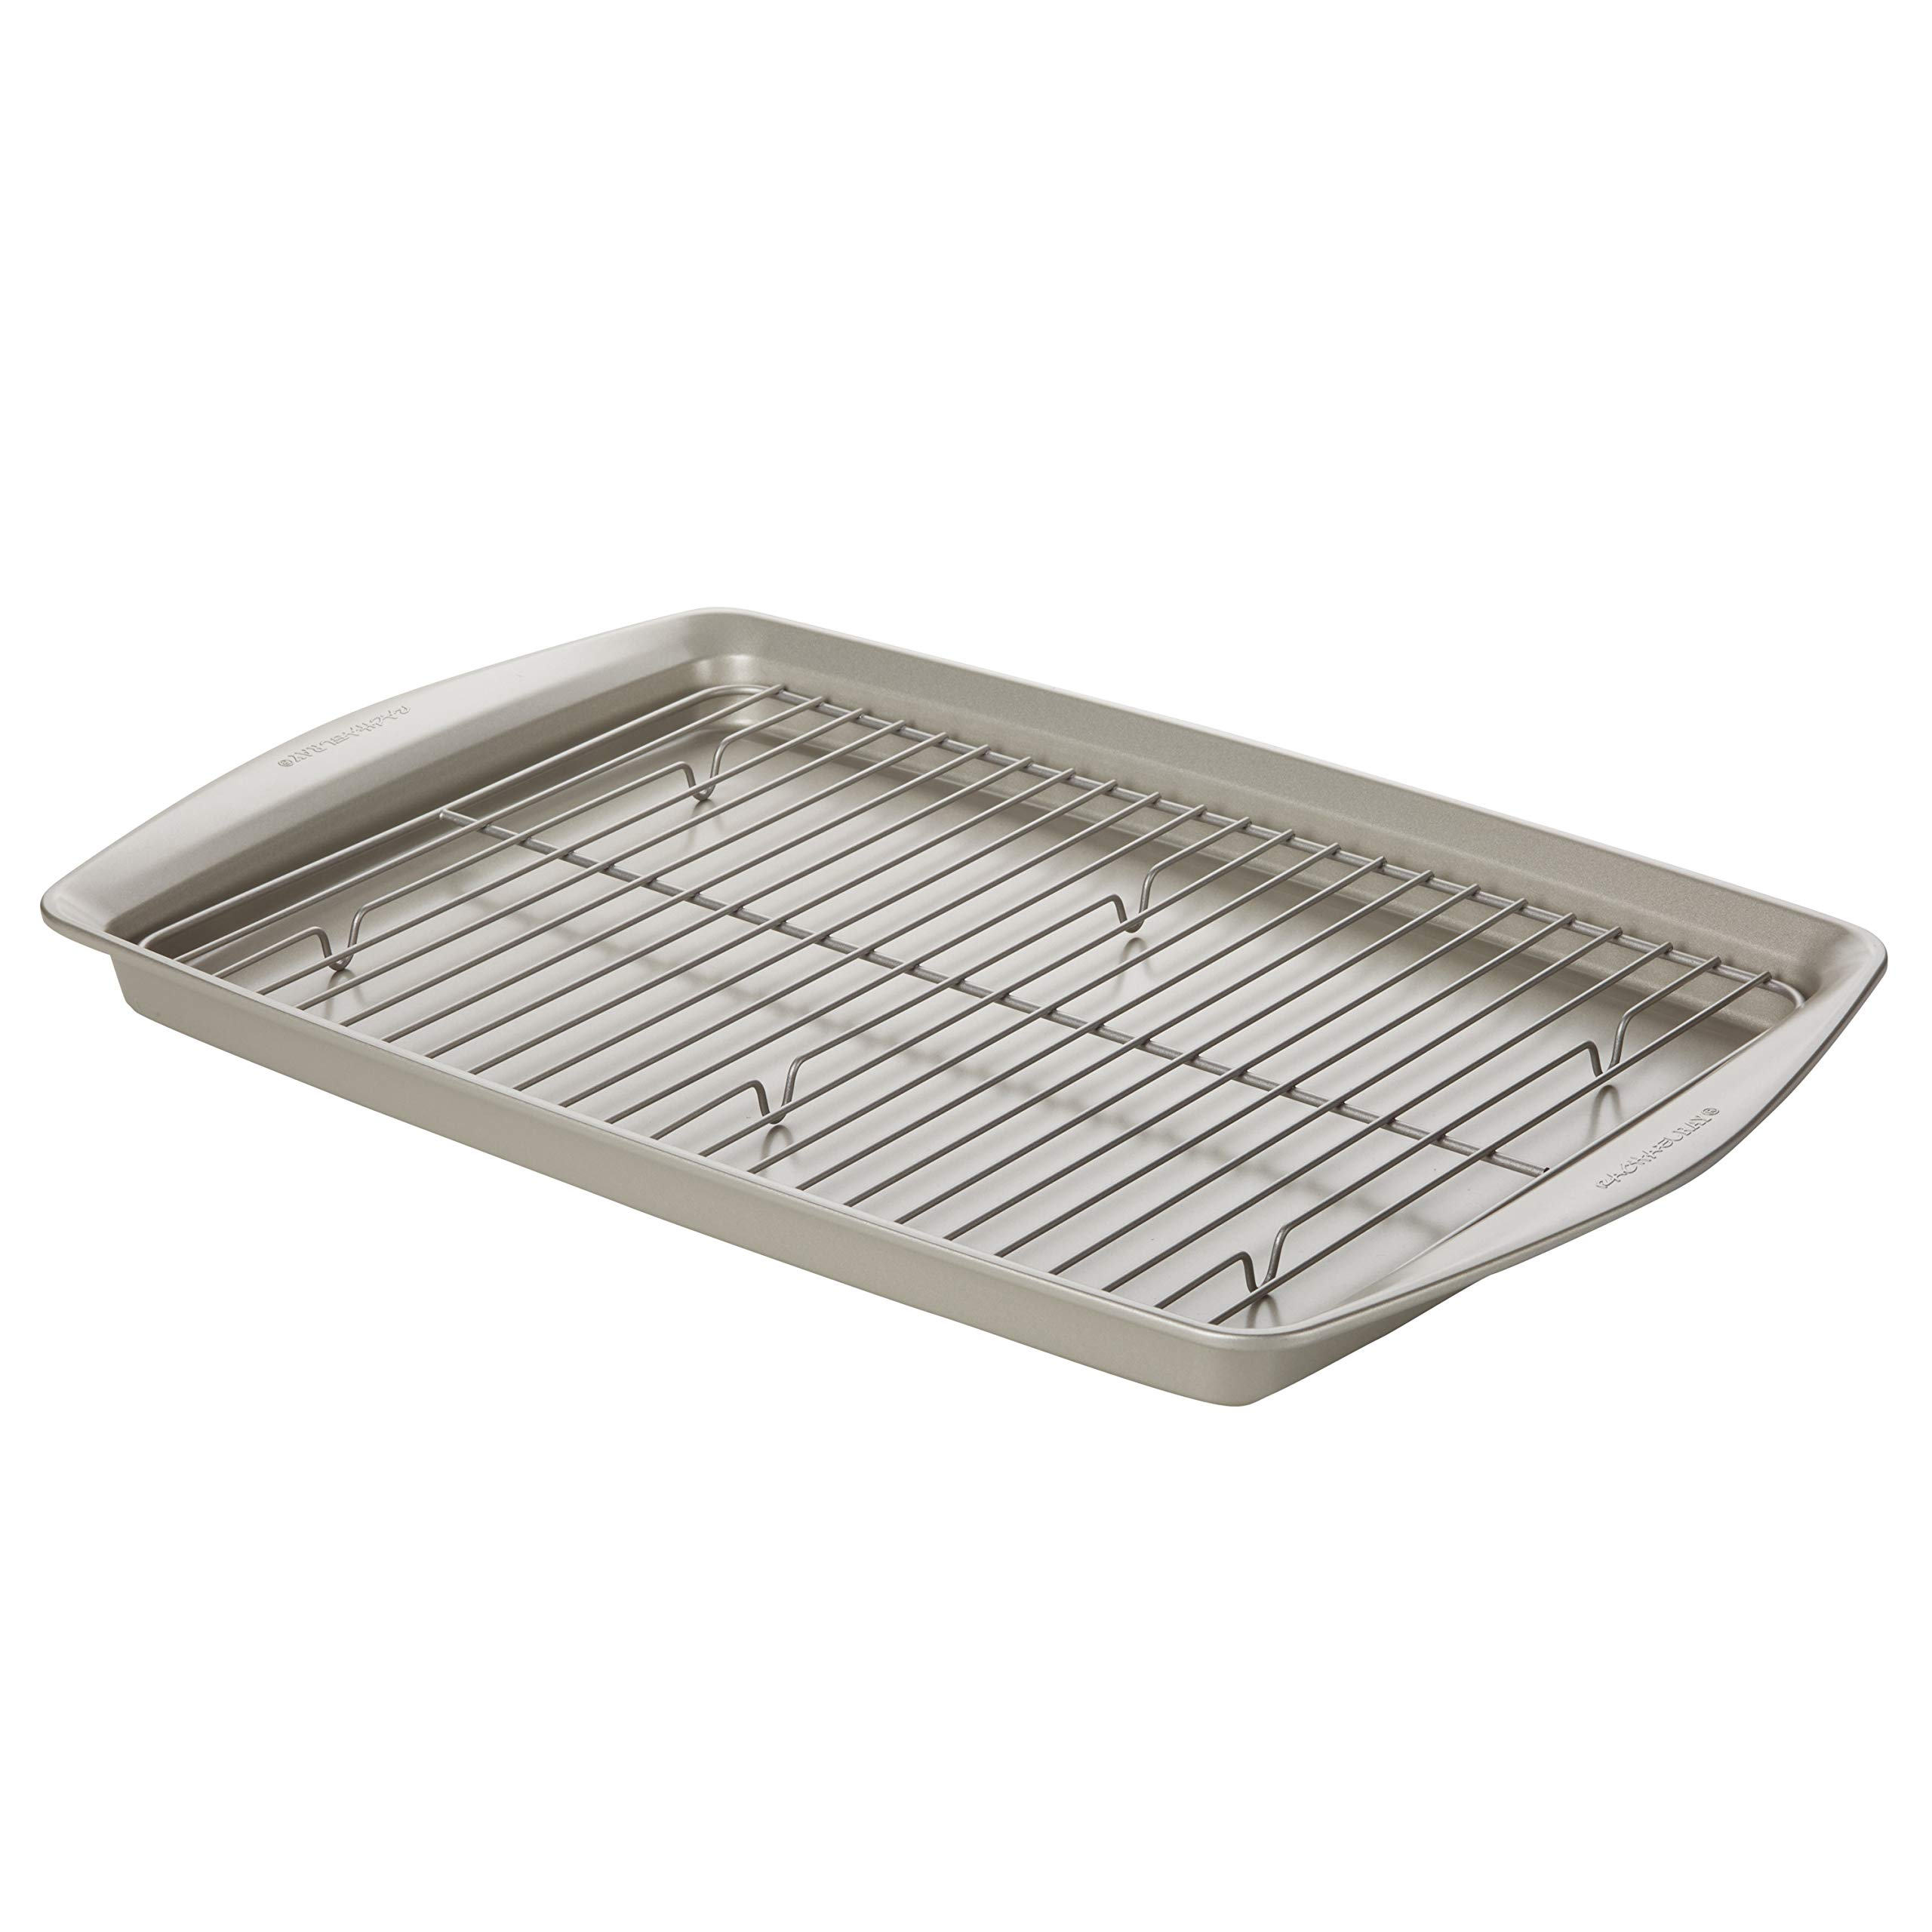 Rachael Ray Nonstick Bakeware Jumbo Cookie Pan with Roasting Rack, 13-Inch x 19-Inch, Silver